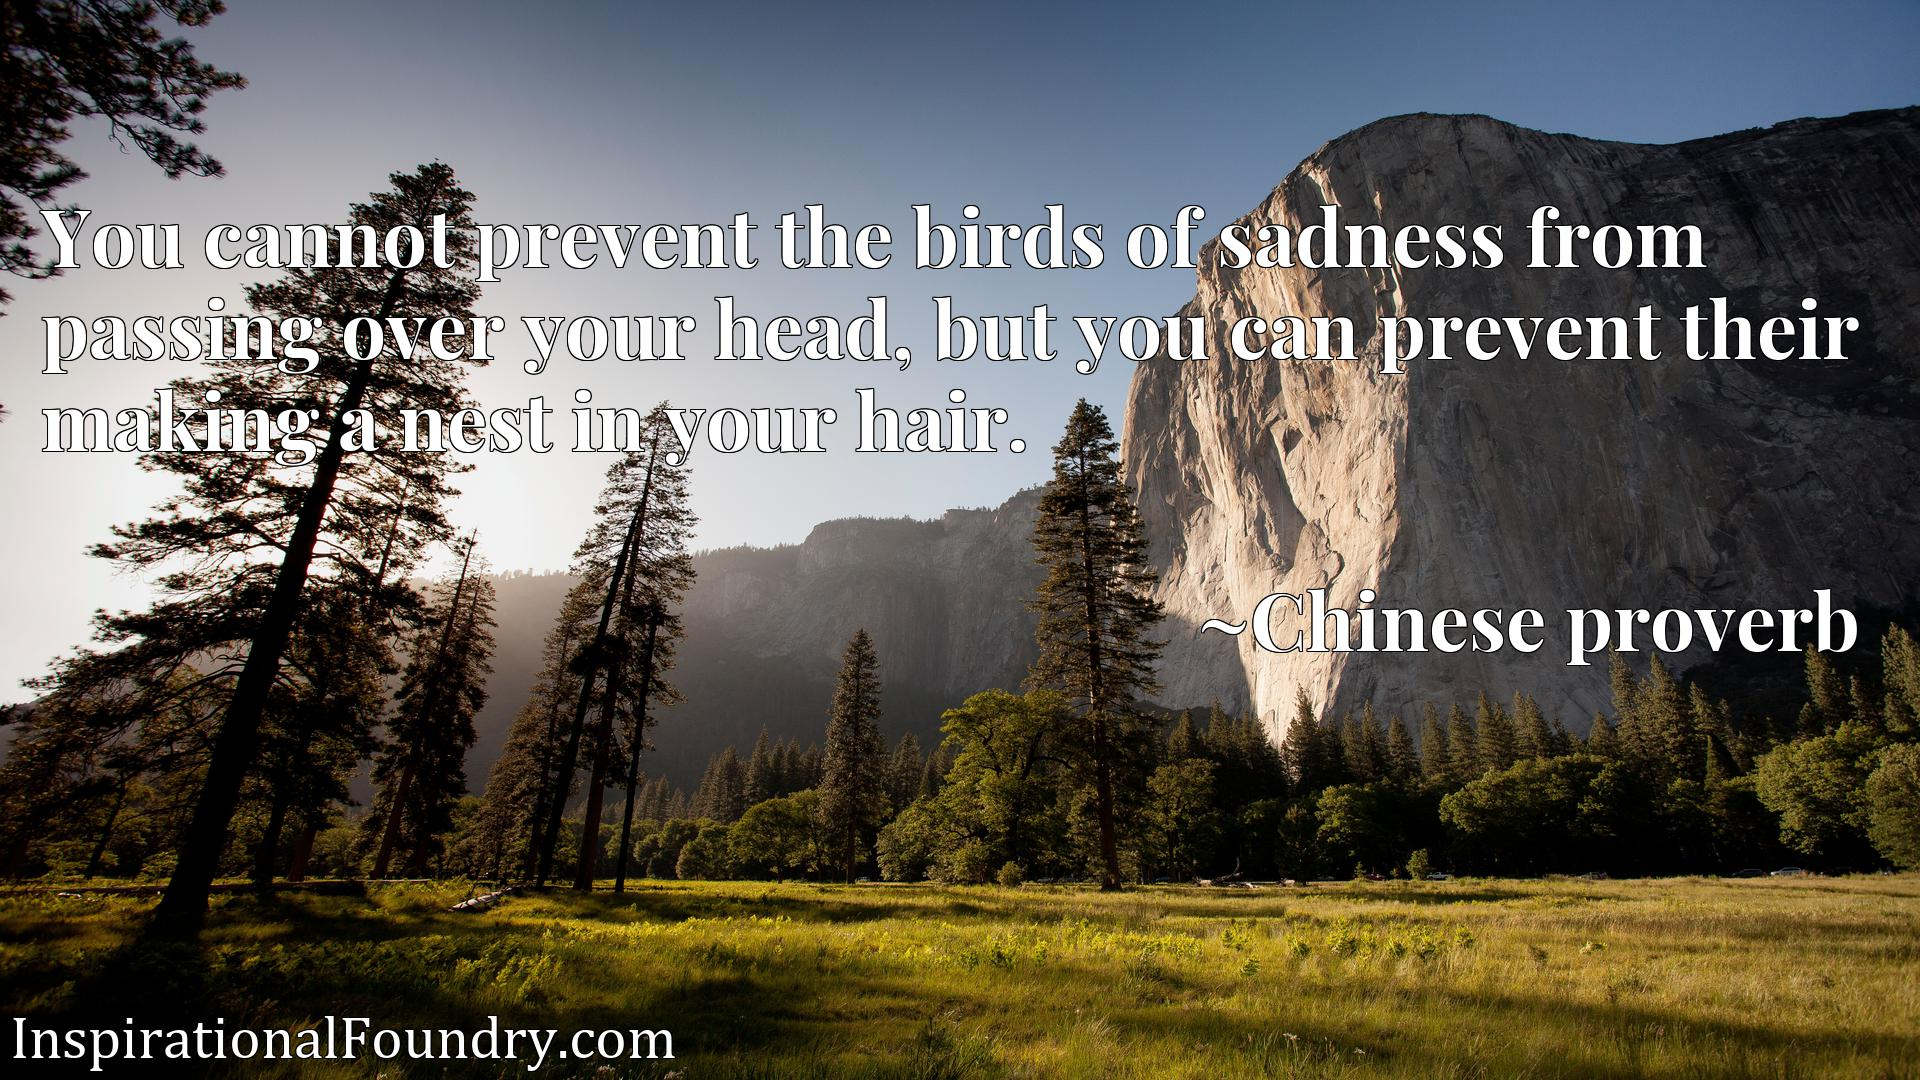 You cannot prevent the birds of sadness from passing over your head, but you can prevent their making a nest in your hair.